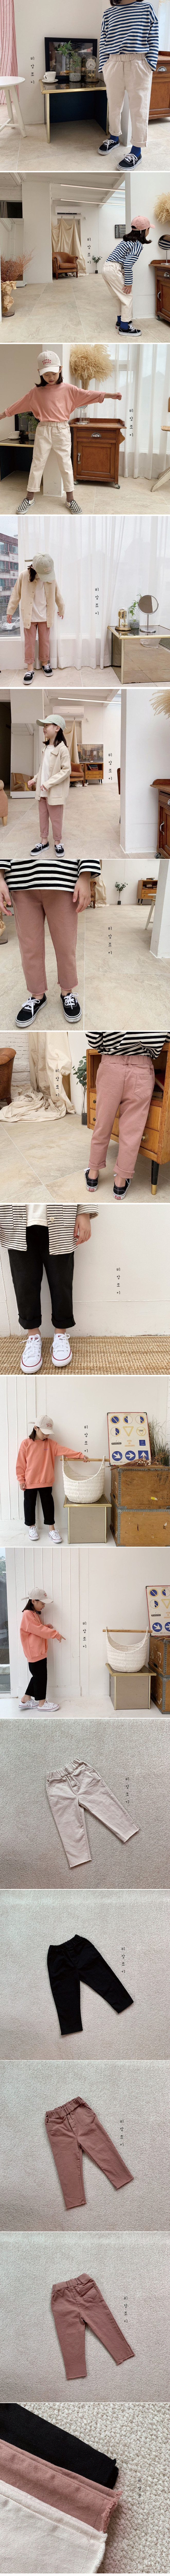 BIEN JOIE - Korean Children Fashion - #Kfashion4kids - Roxy Span Pants - 2